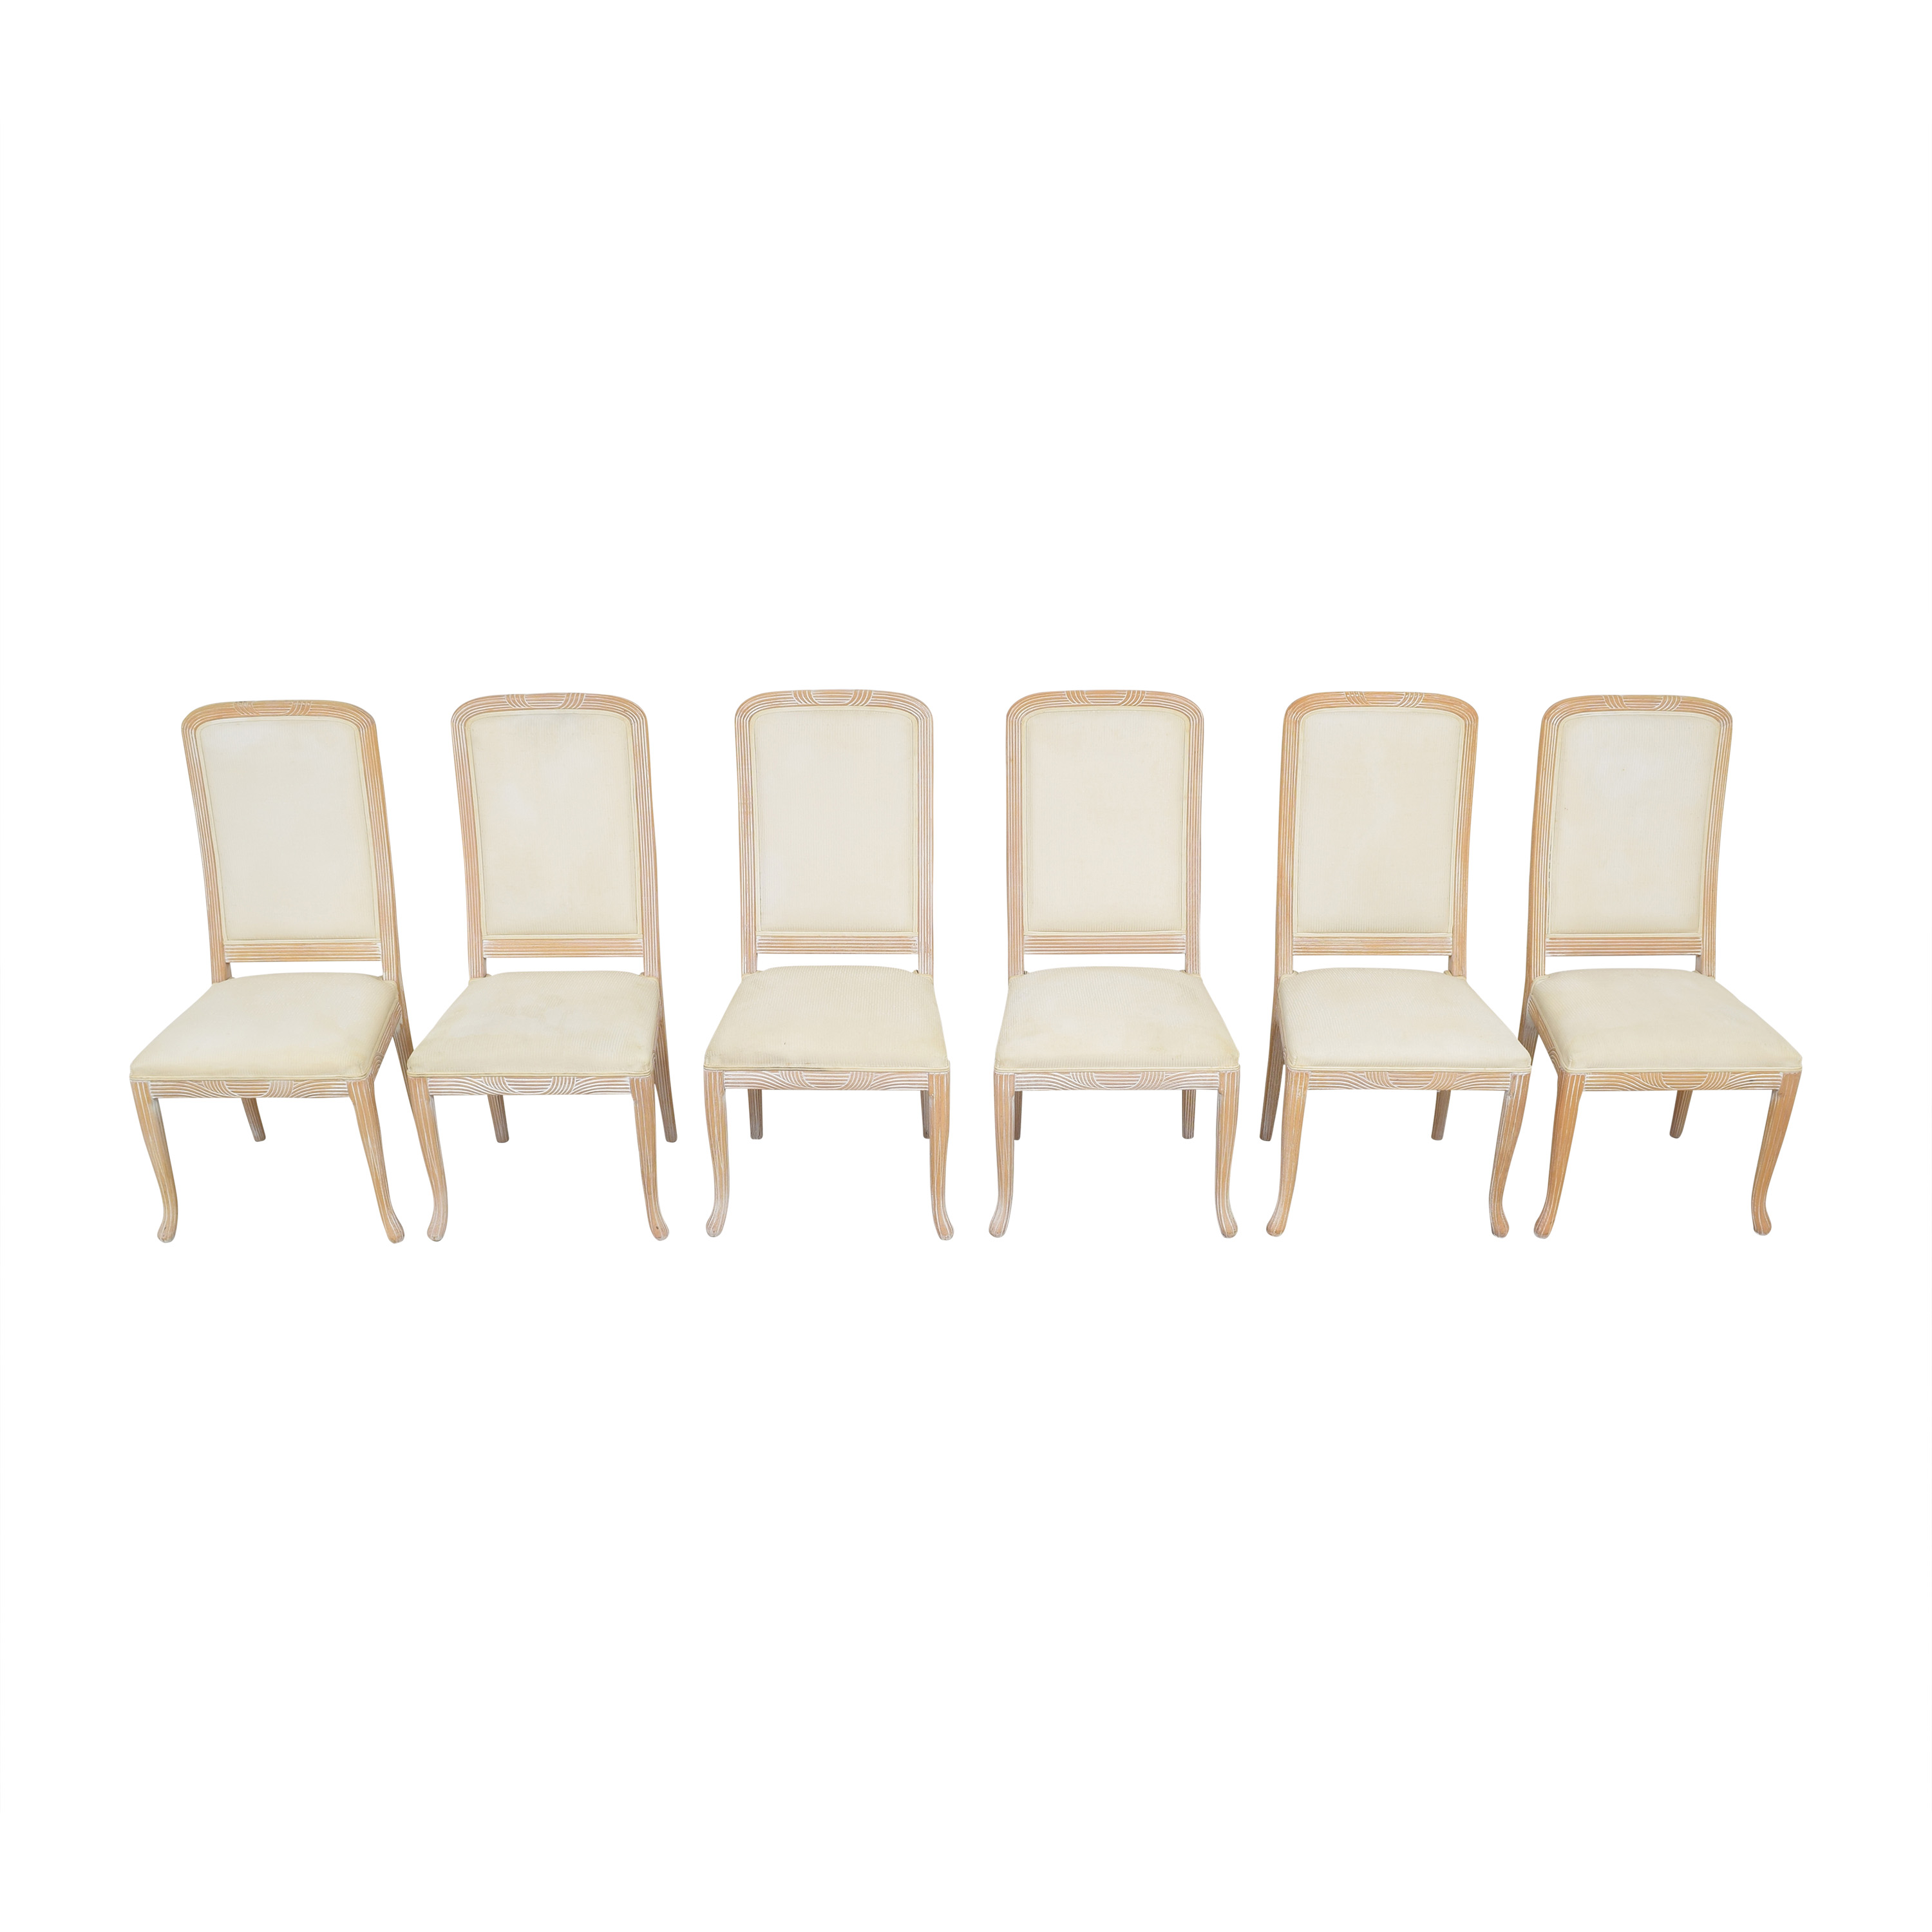 Buying & Design Buying & Design Upholstered Dining Side Chairs ma